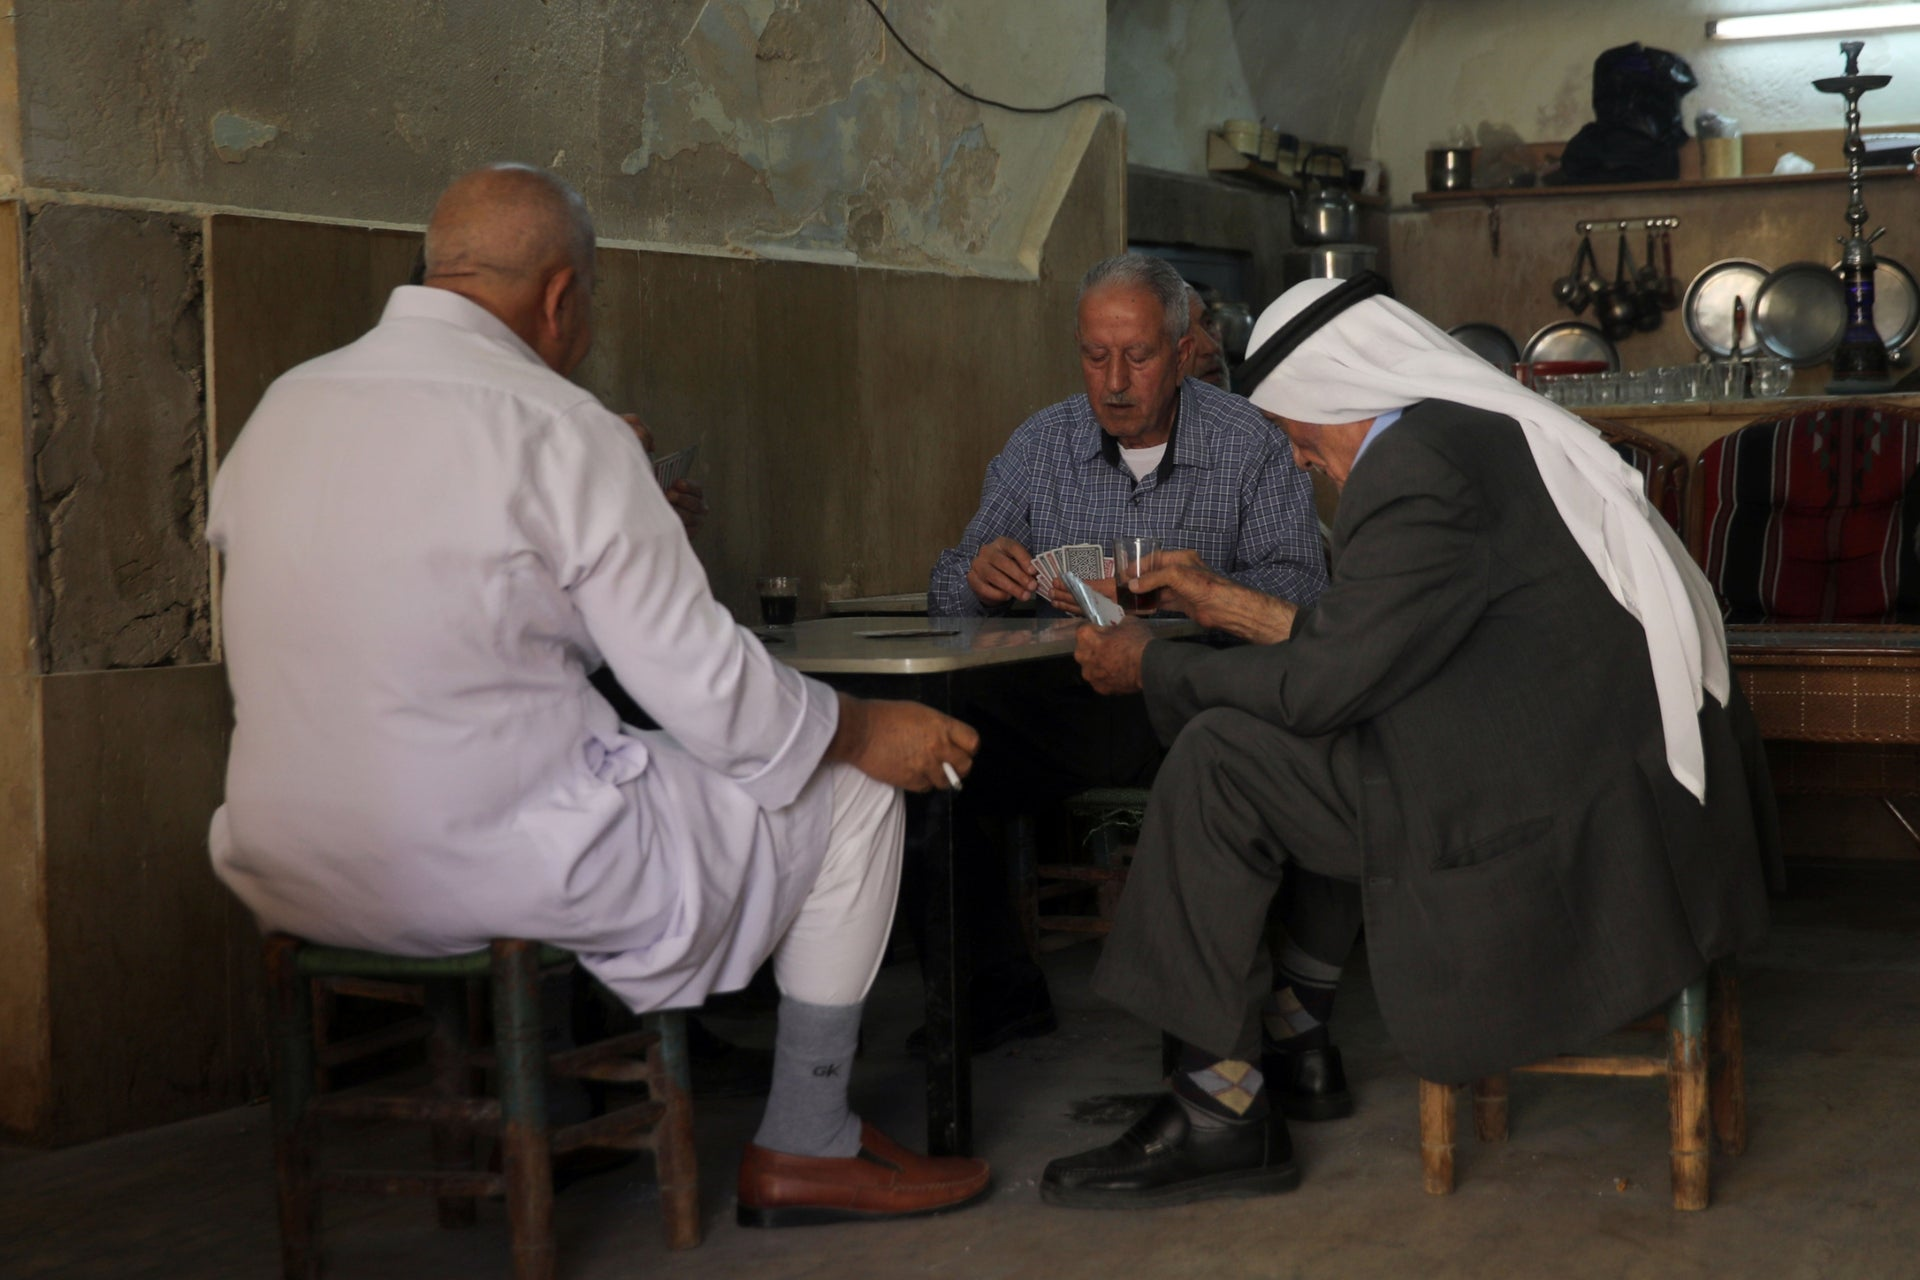 A group of men playing cards in a West Bank cafe.